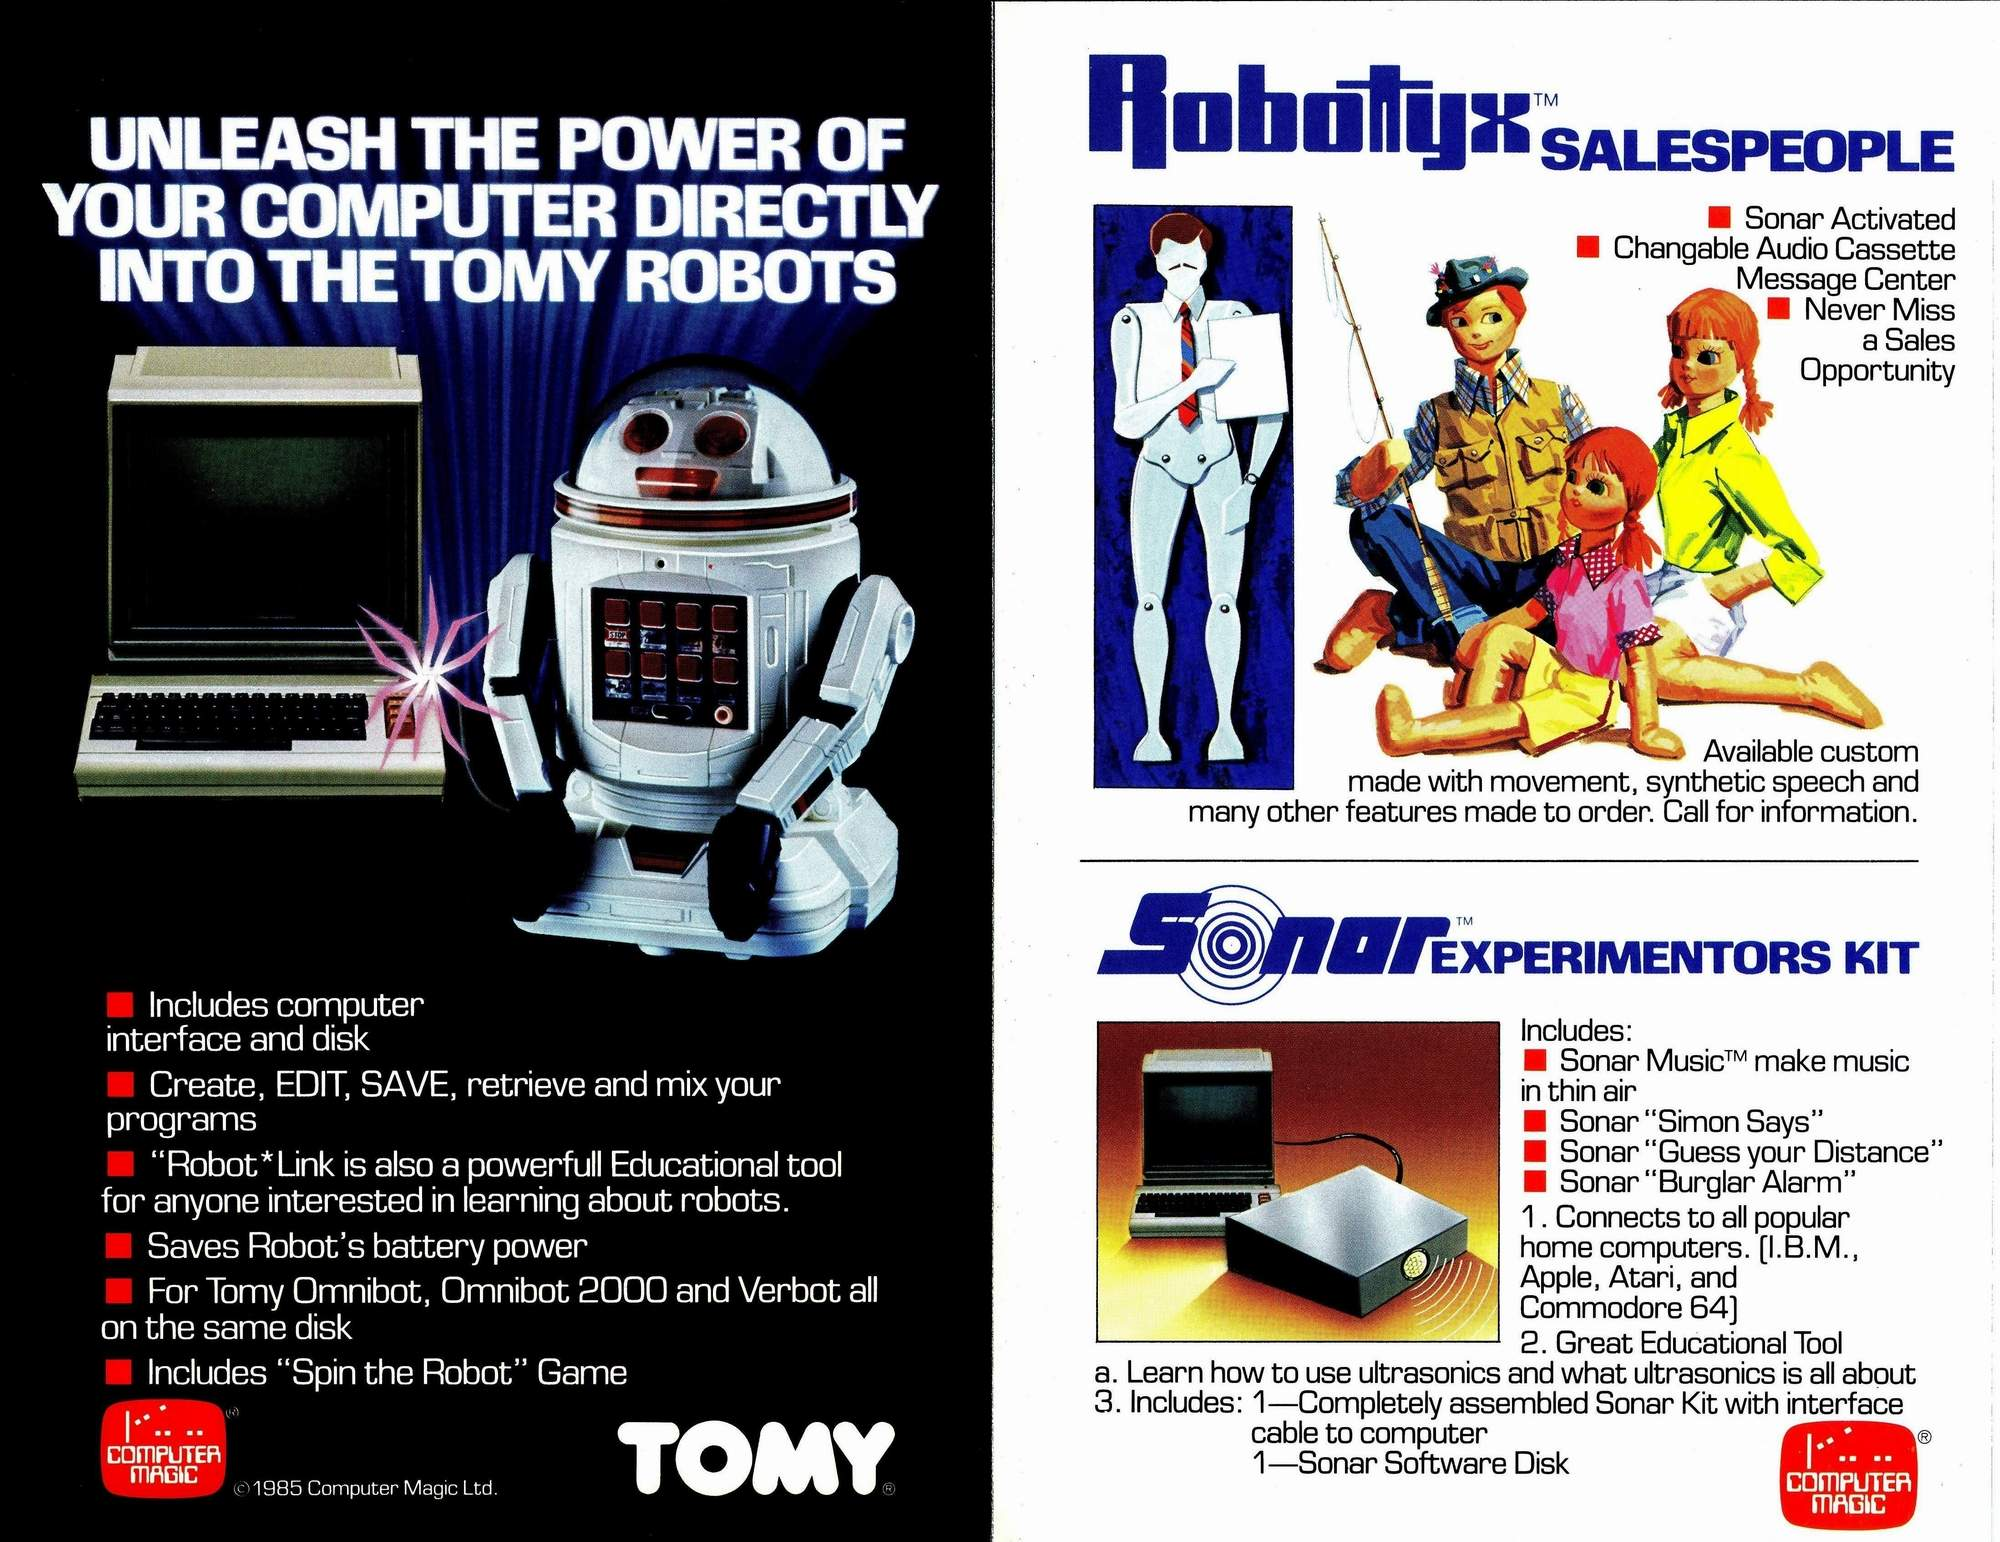 Omnibot Family Advertisement - The Old Robot's Web Site